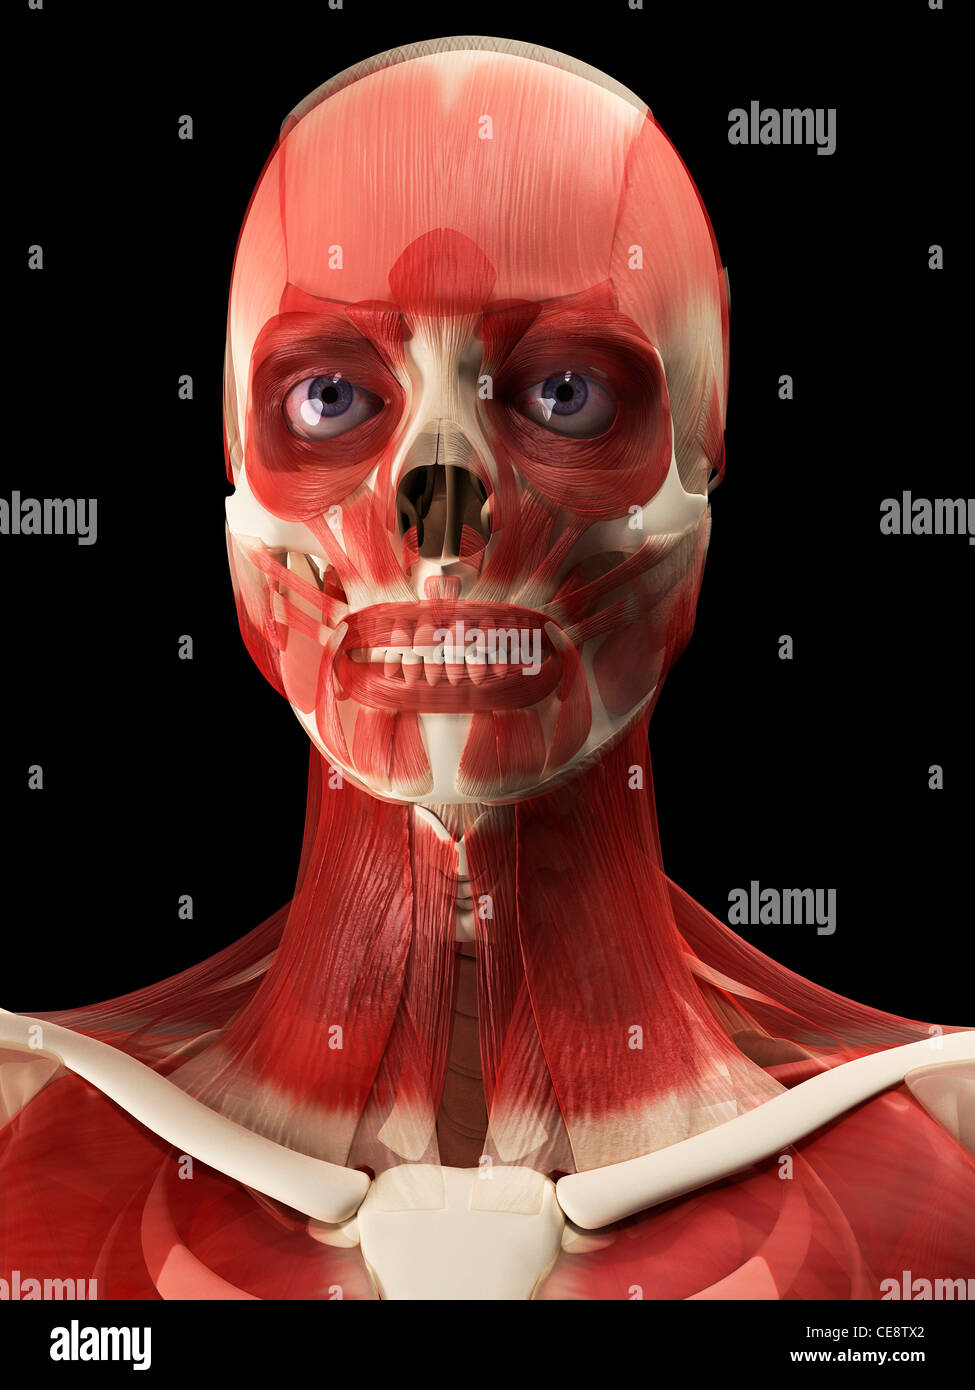 Muscles of the head and neck, computer artwork. - Stock Image